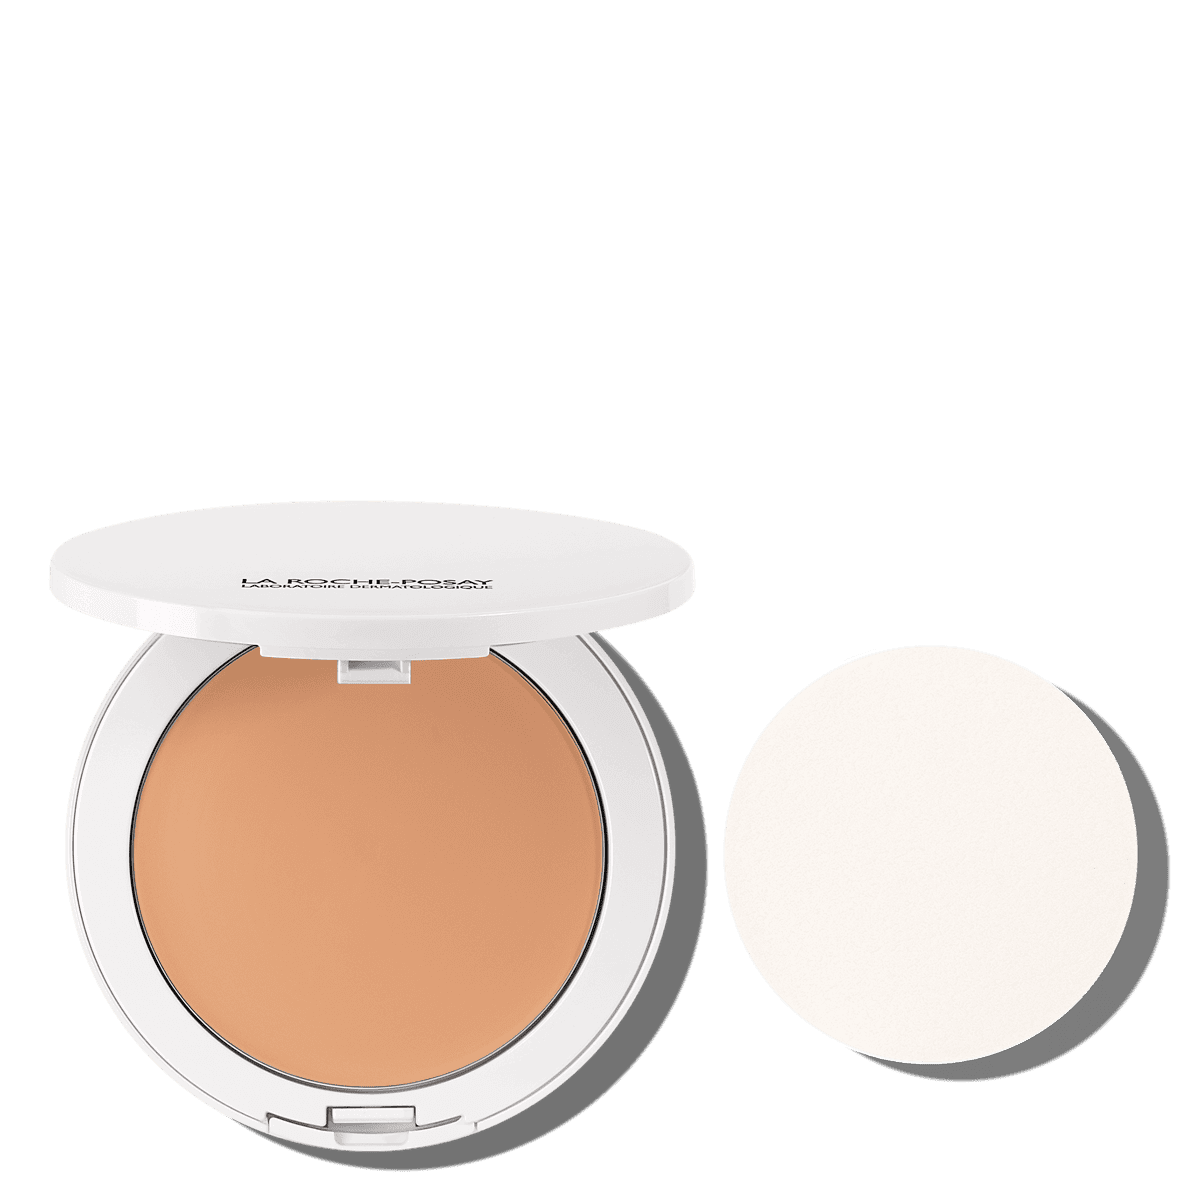 La Roche Posay ProductPage Sun Anthelios XL Compact Cream Spf50 Shade